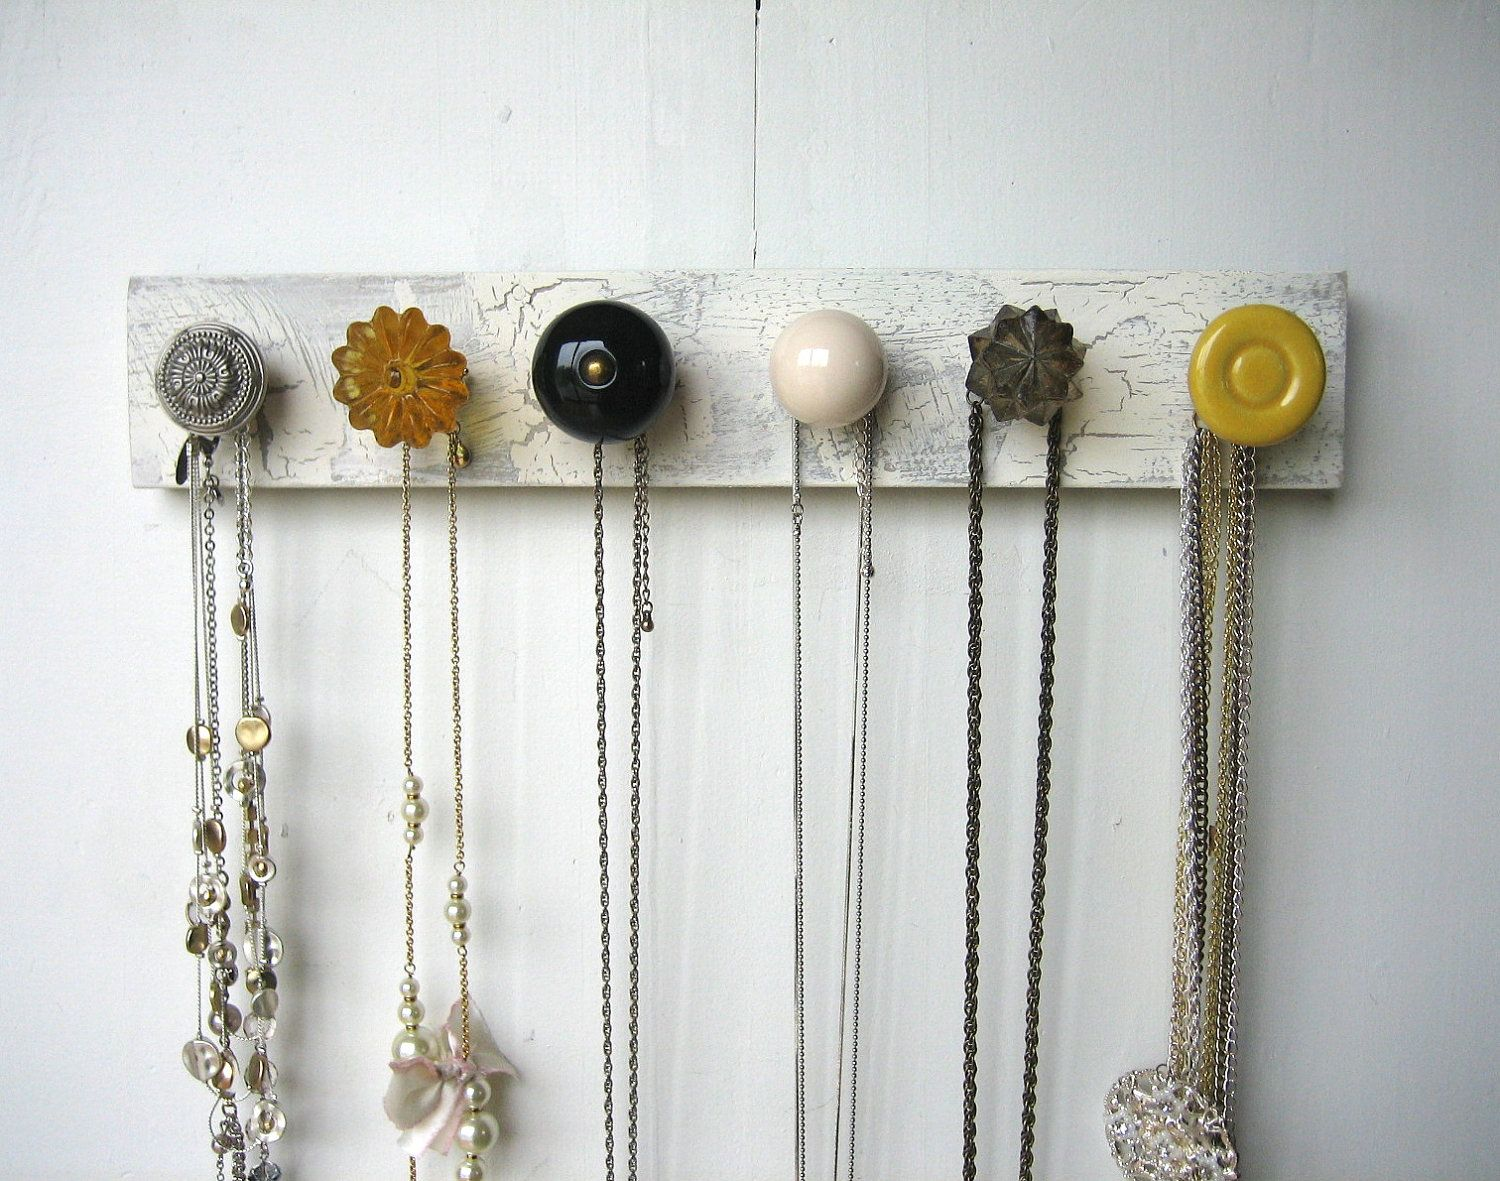 Hanging Jewelry Organizer with Yellow and Gray Knobs Necklace